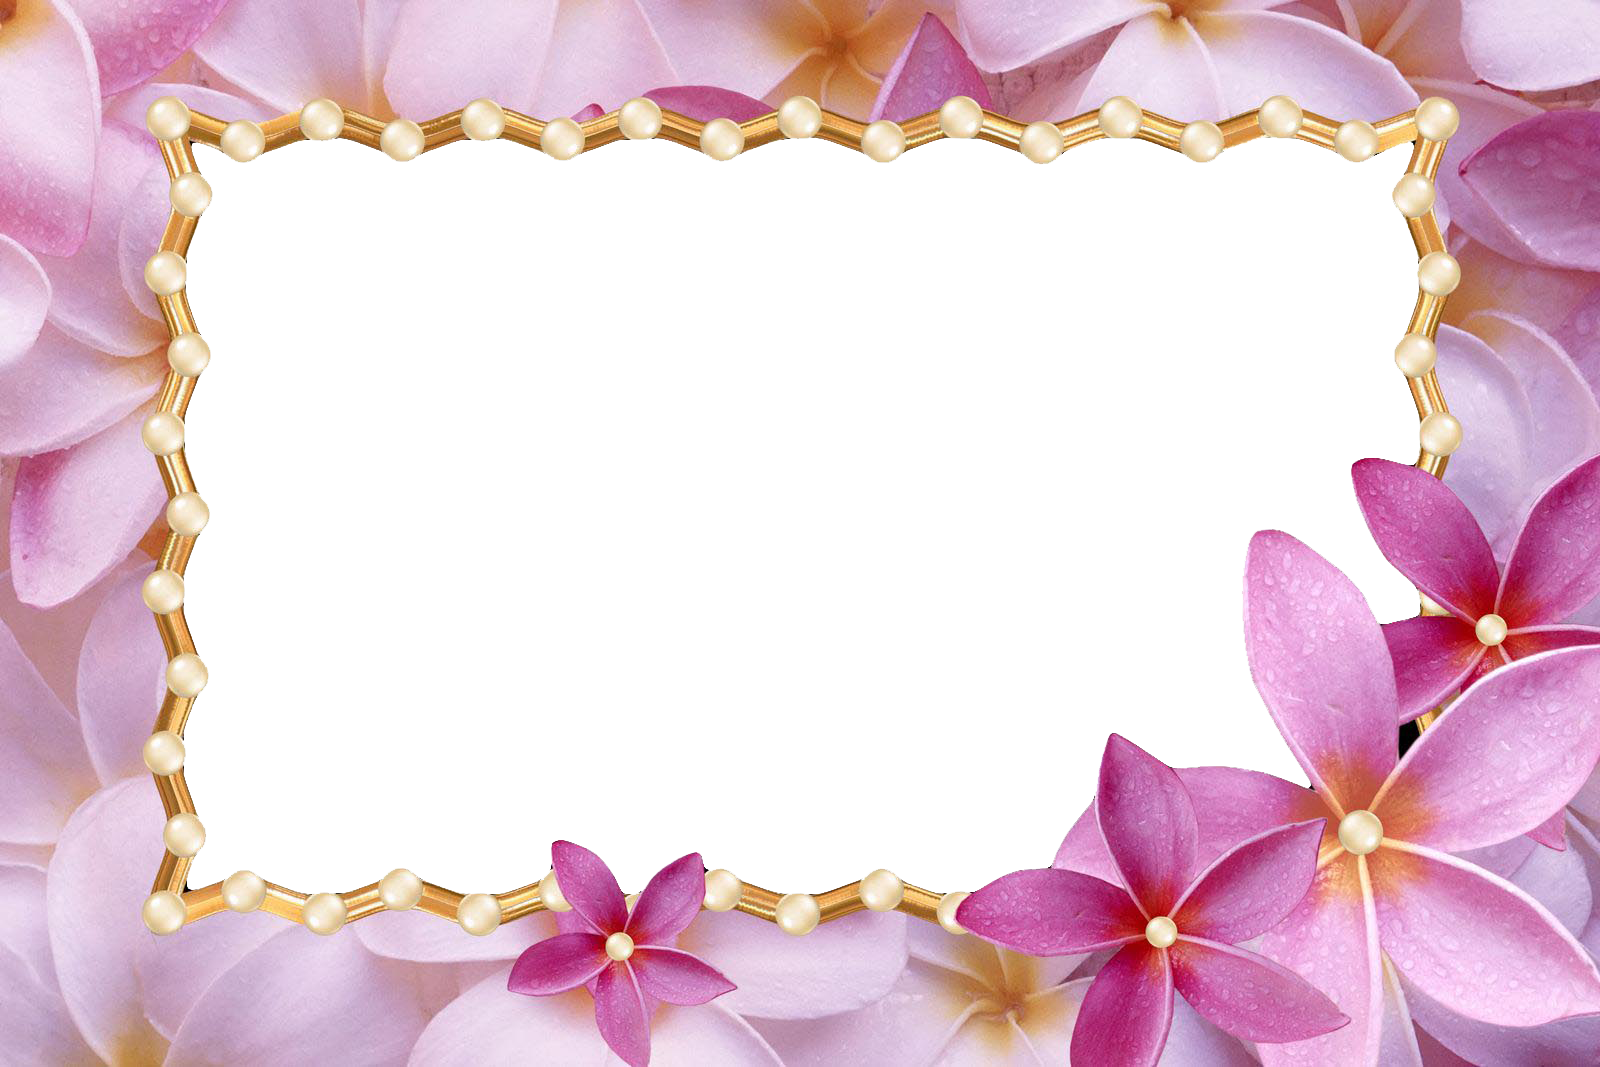 photoshoppng frames wallpapers designs Love Frame 1600x1067